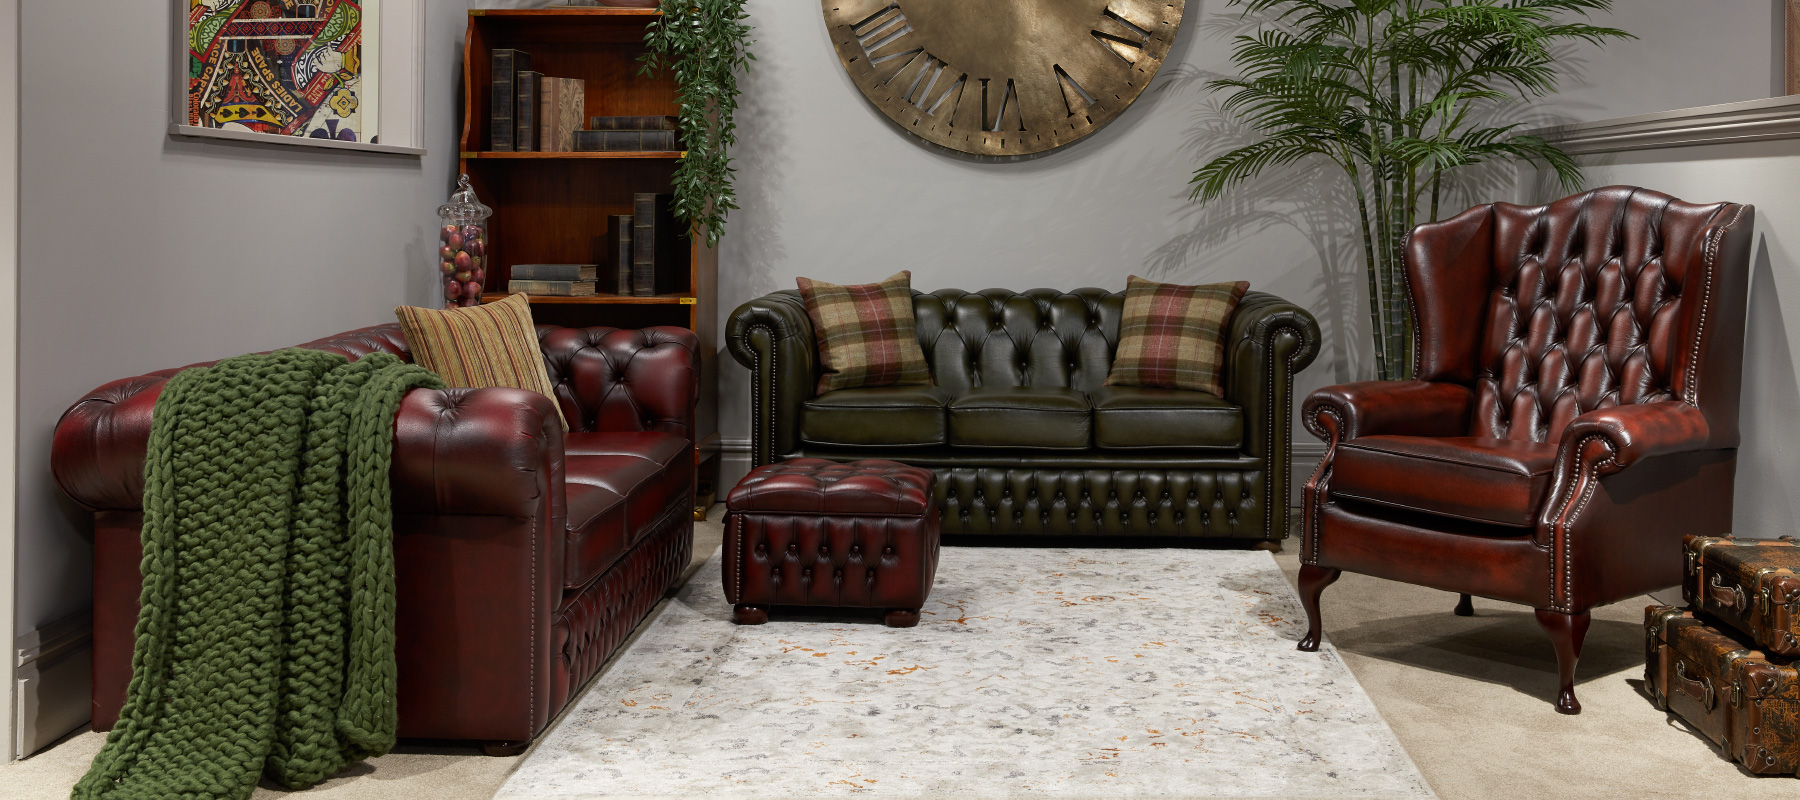 5 key features of a quality sofa